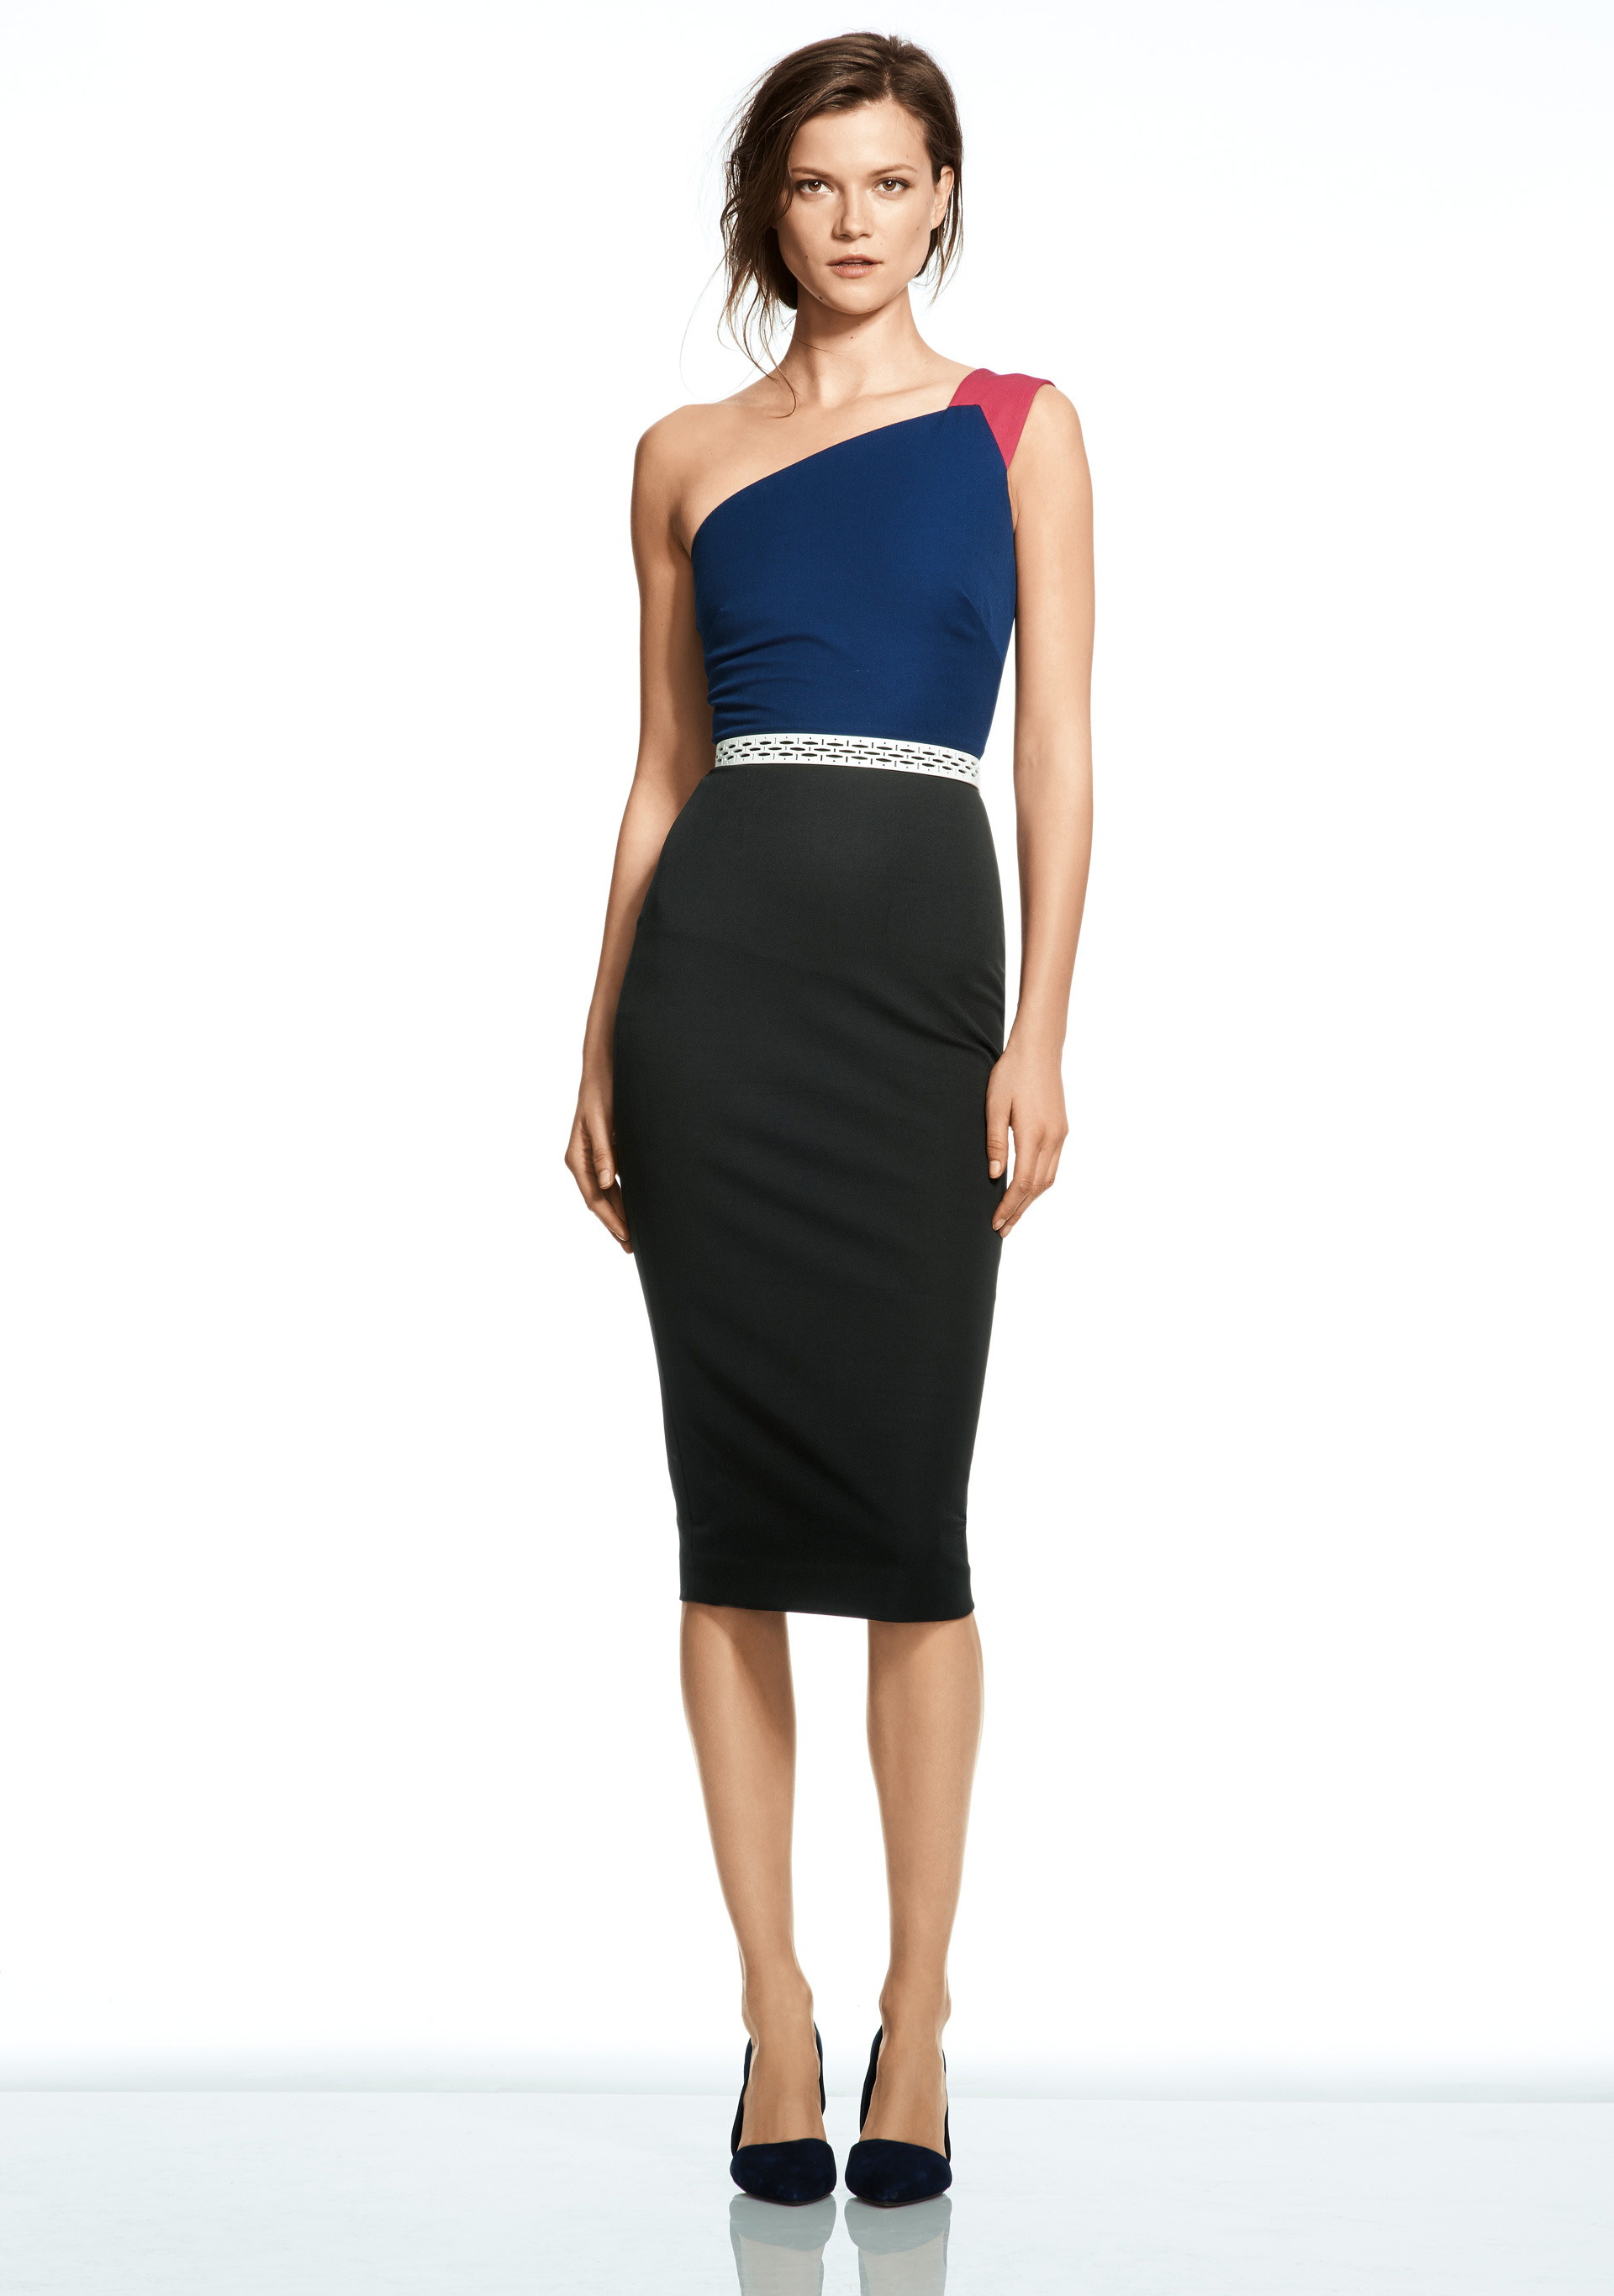 Rolant Mouret for Banana Republic: